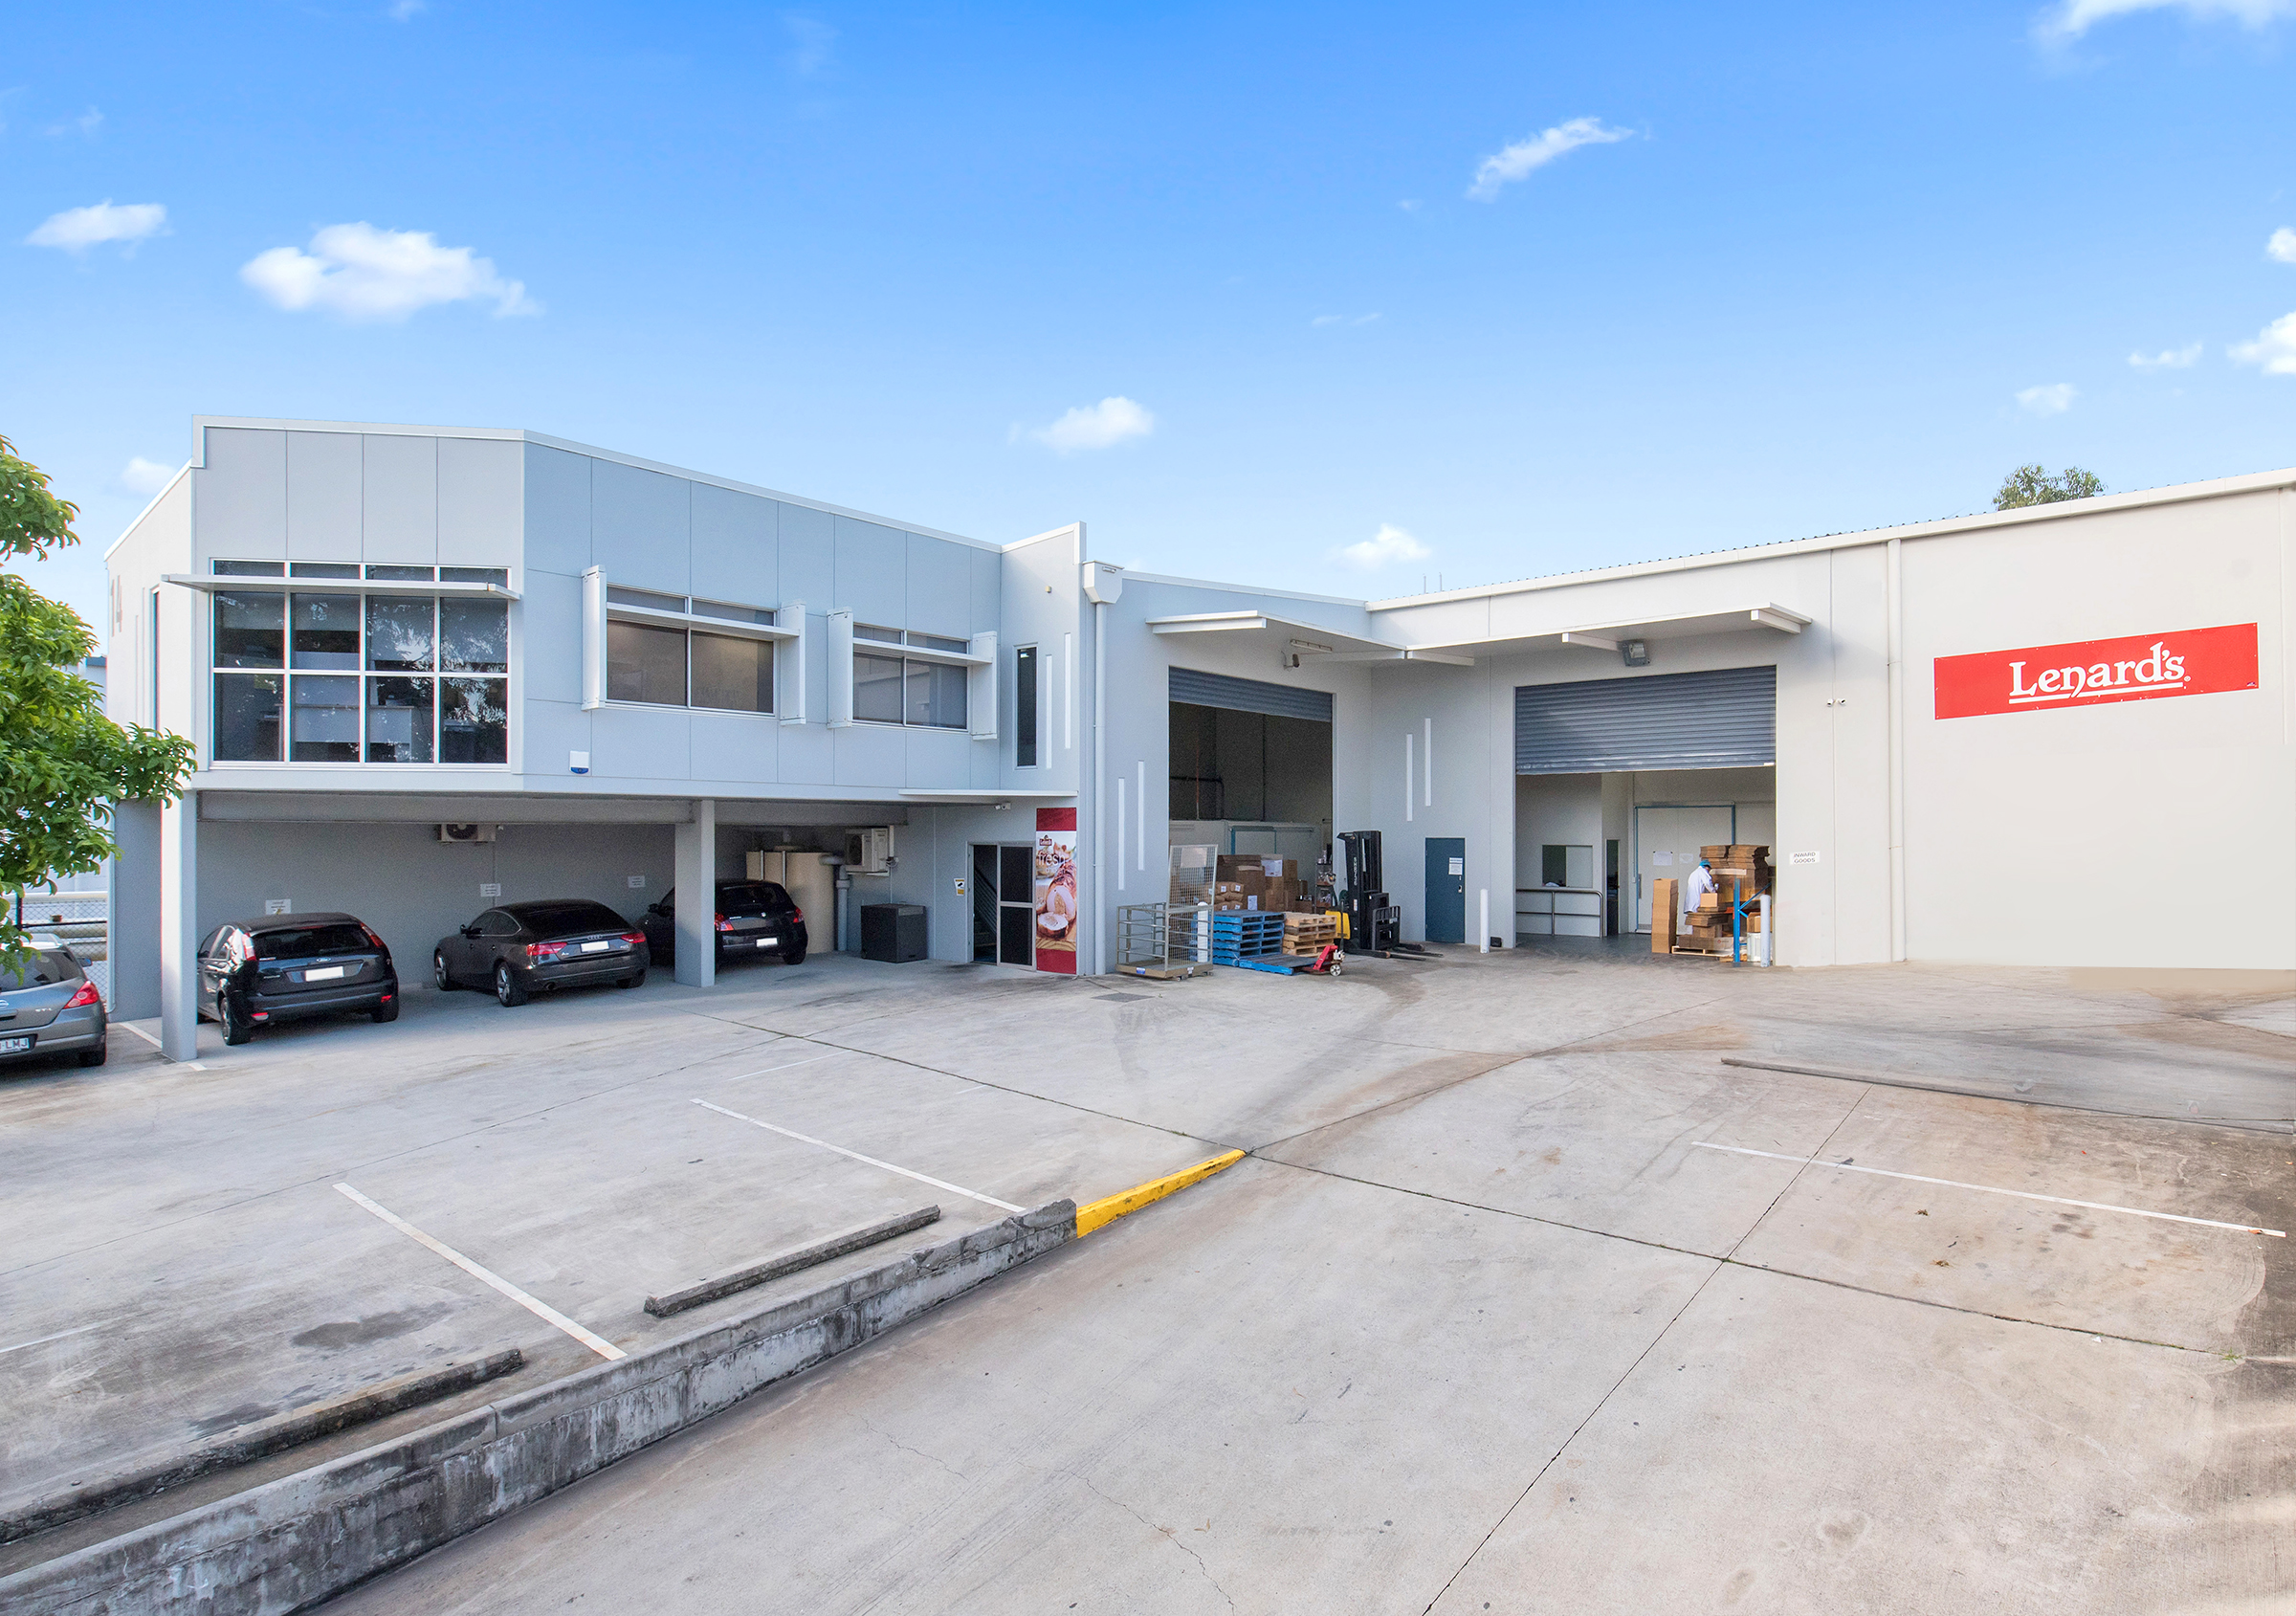 Brisbane Industrial Investment – 7 Year Lease to Iconic National Brand